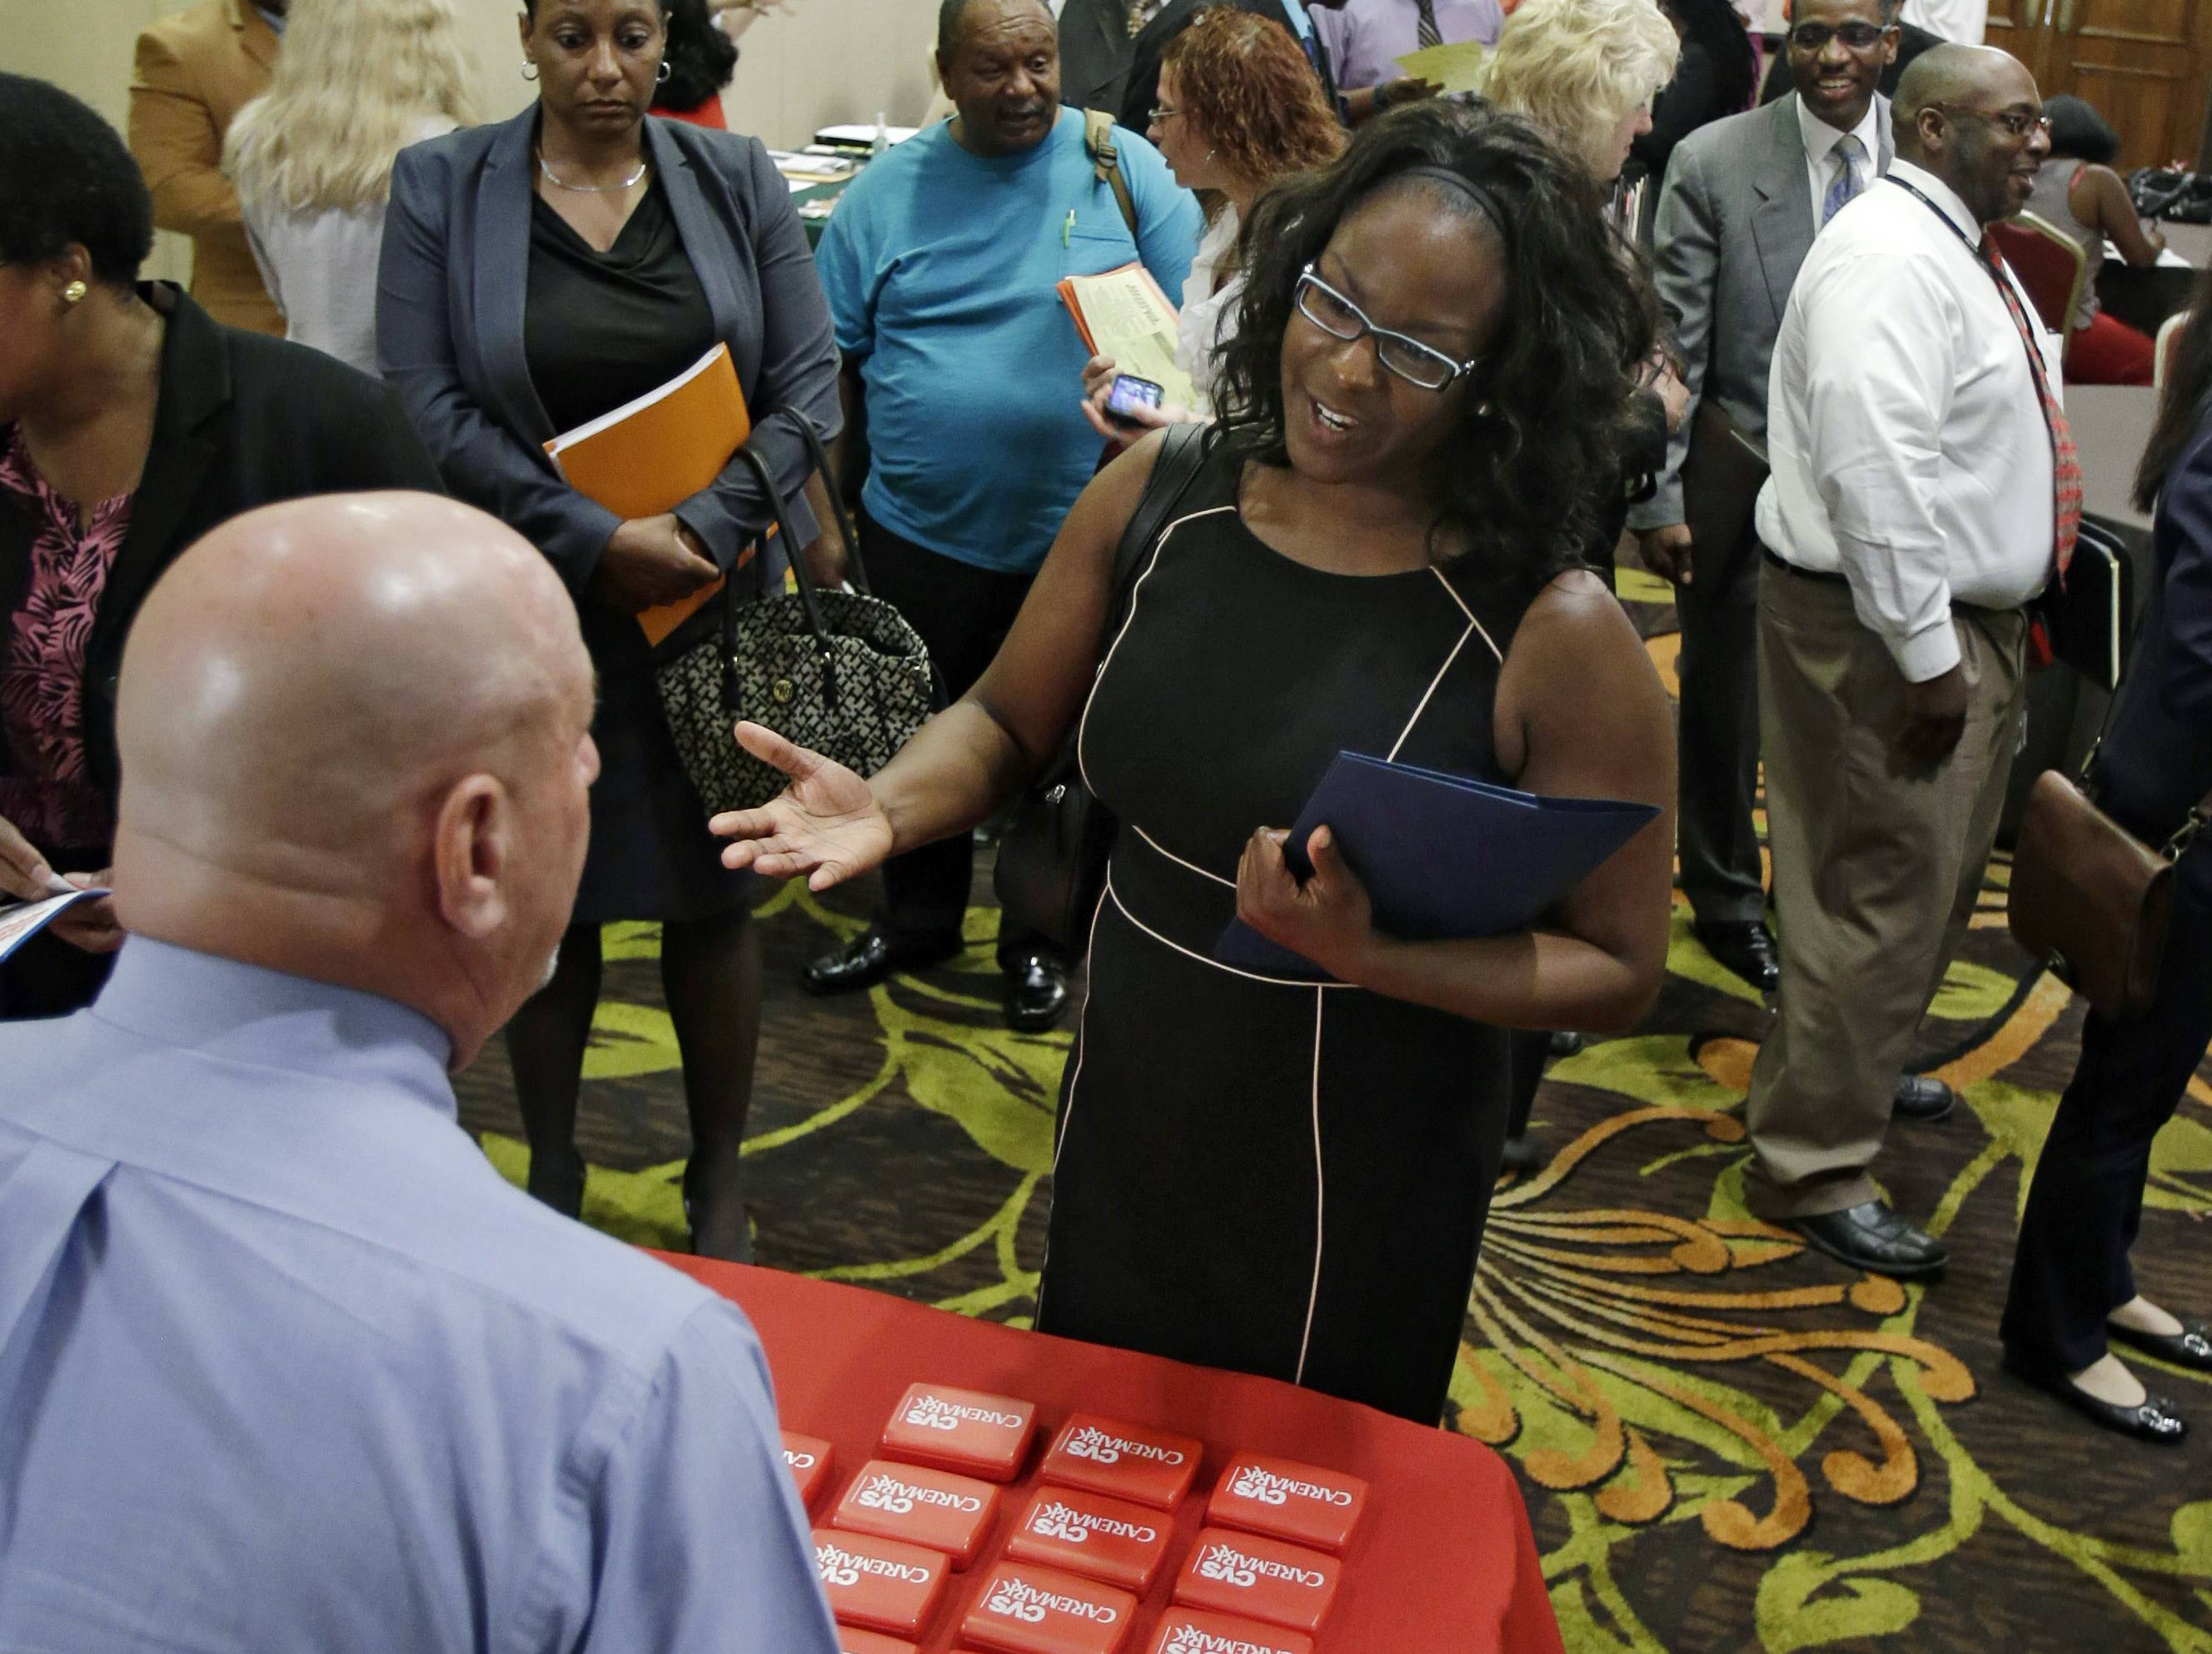 Marsha Lawson talks with a representative from CVS at the Cleveland Career Fair in Independence, Ohio. Optimism among chief executives of large U.S. companies has reached a two-year high, driven by greater optimism about hiring and sales.